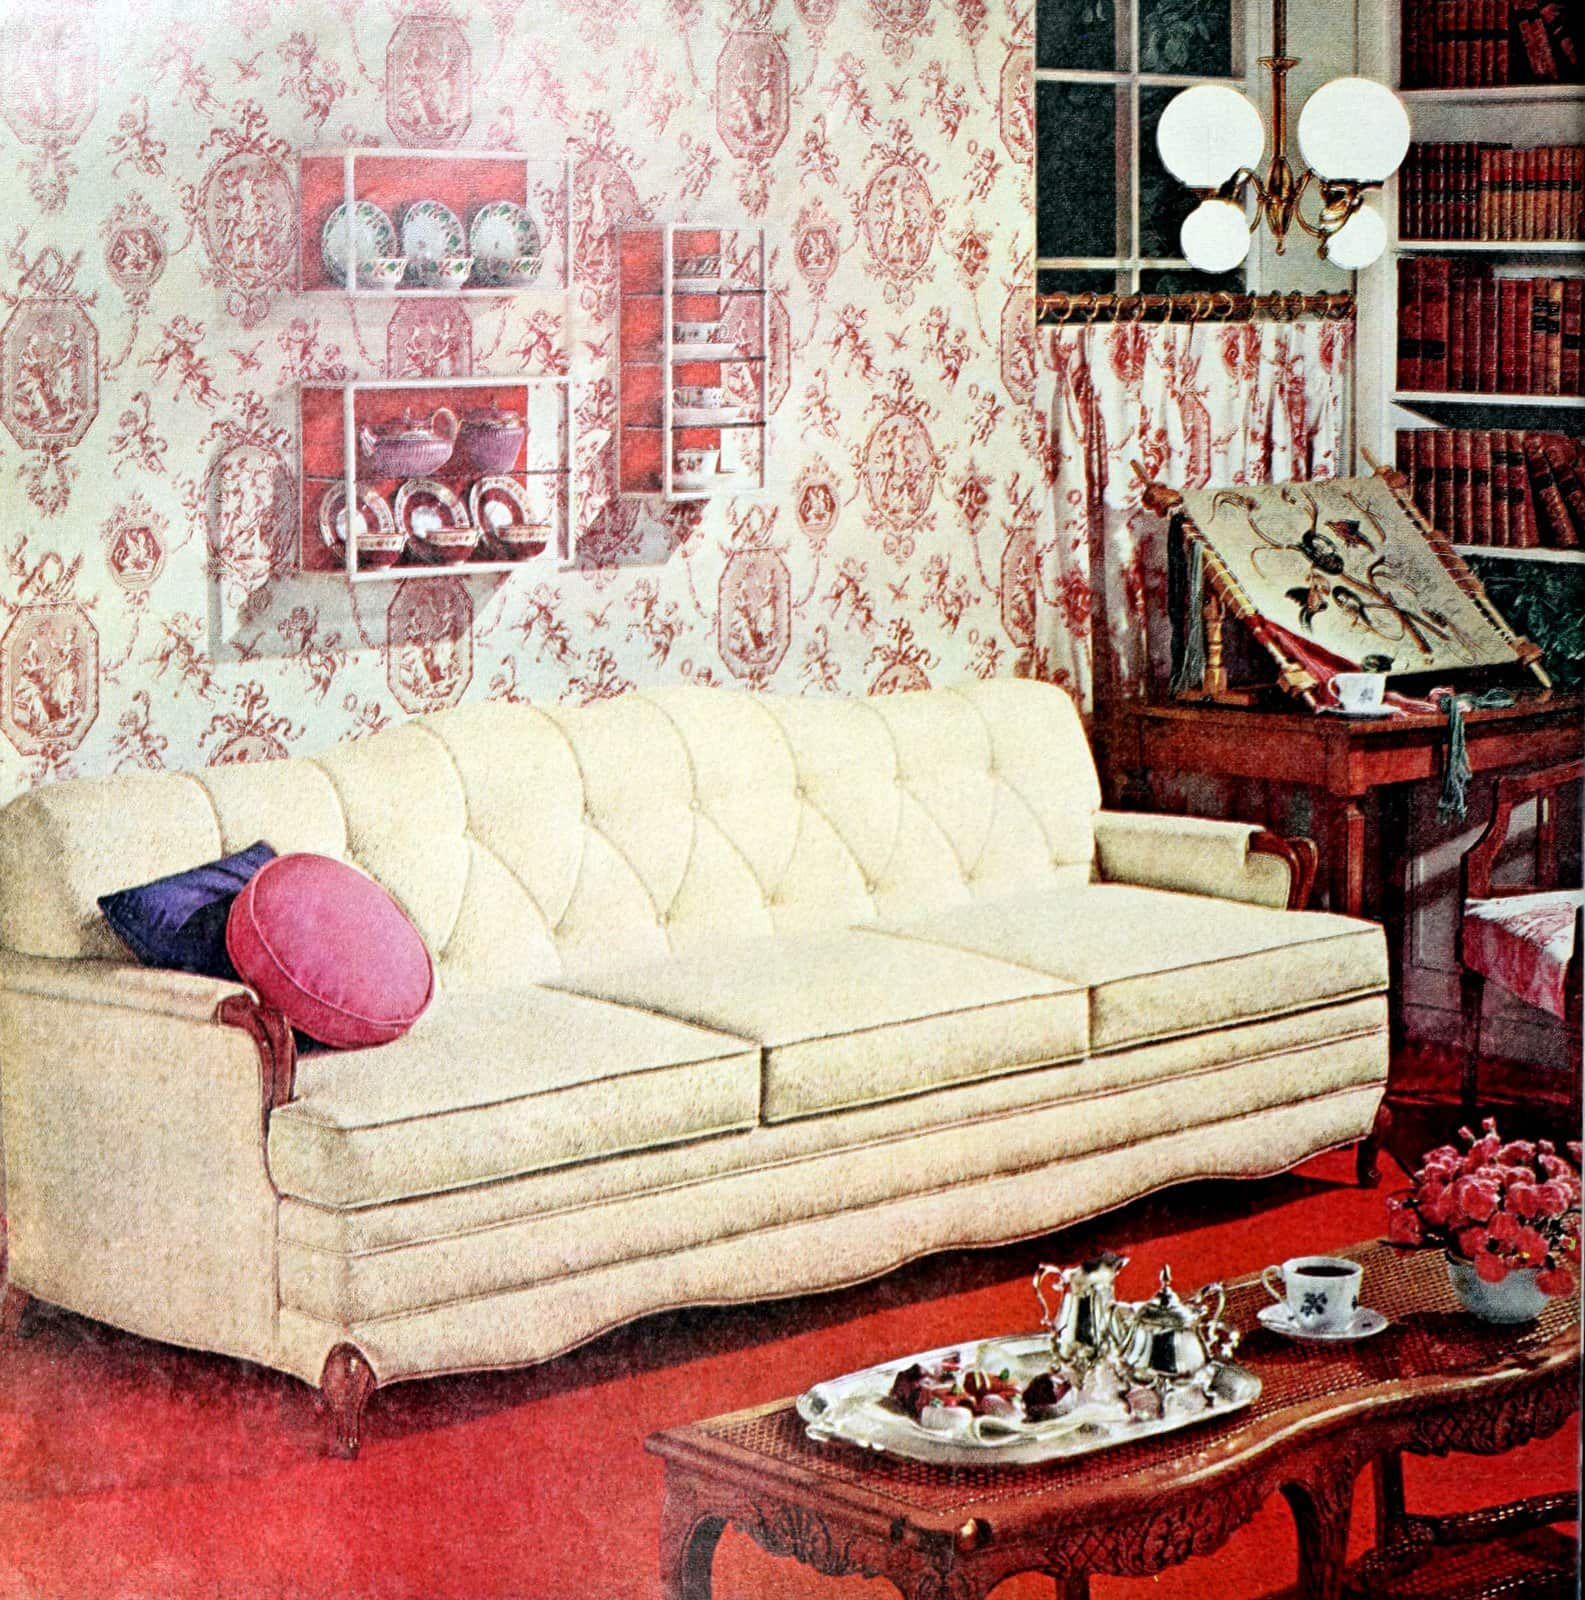 Classic home style in a sixties living room with red wall-to-wall carpet